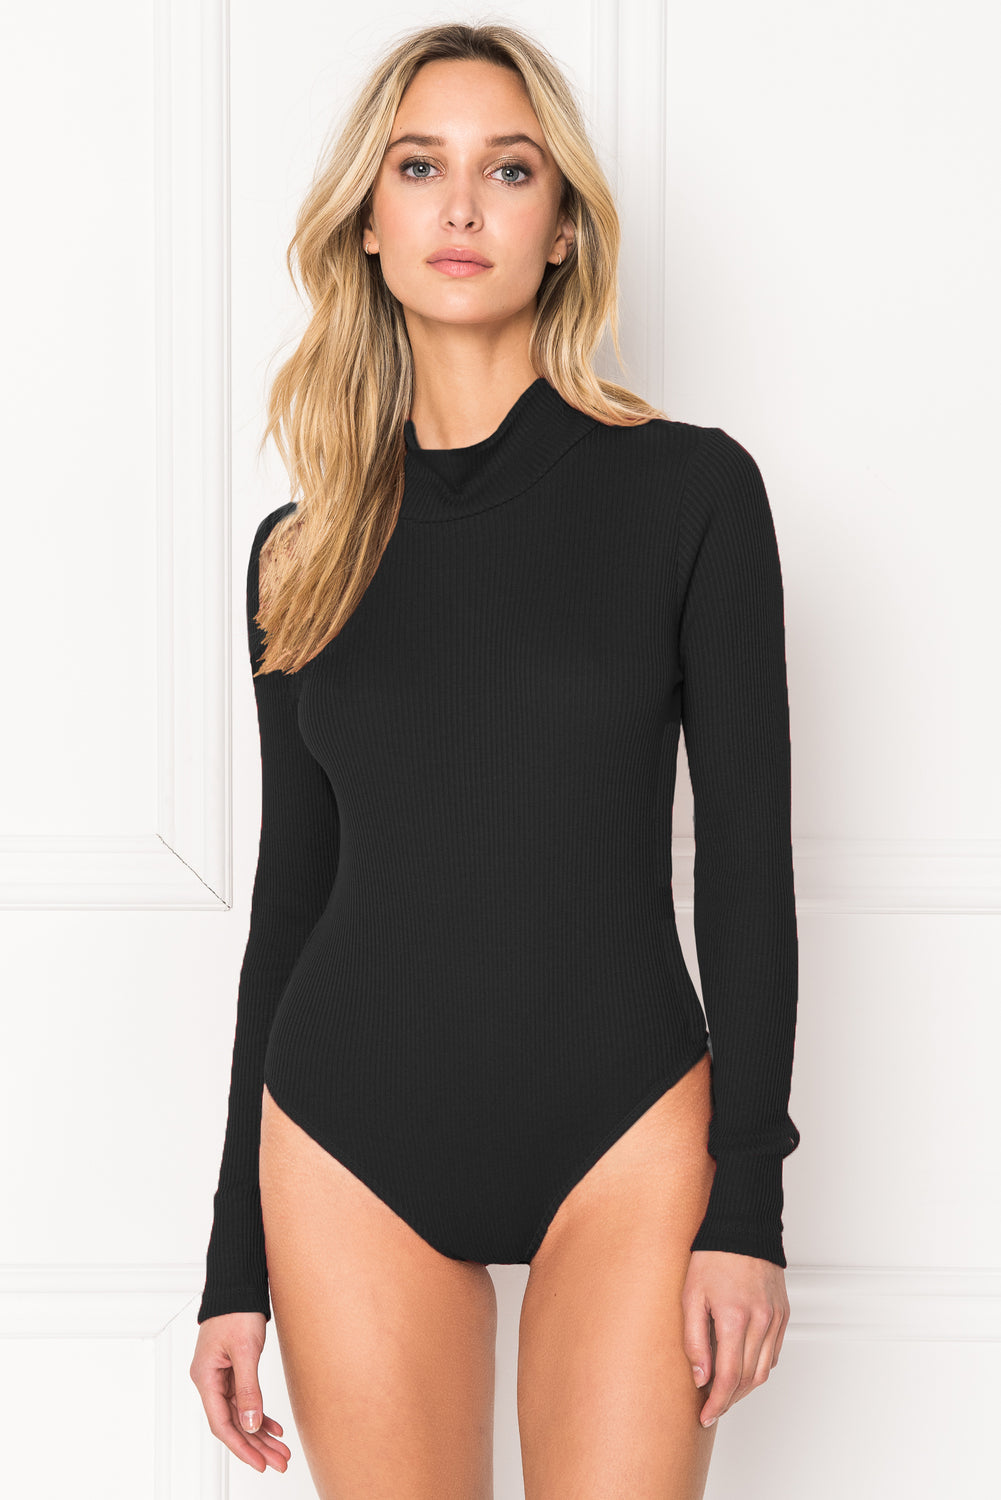 AZANIA Black Mock Neck Bodysuit